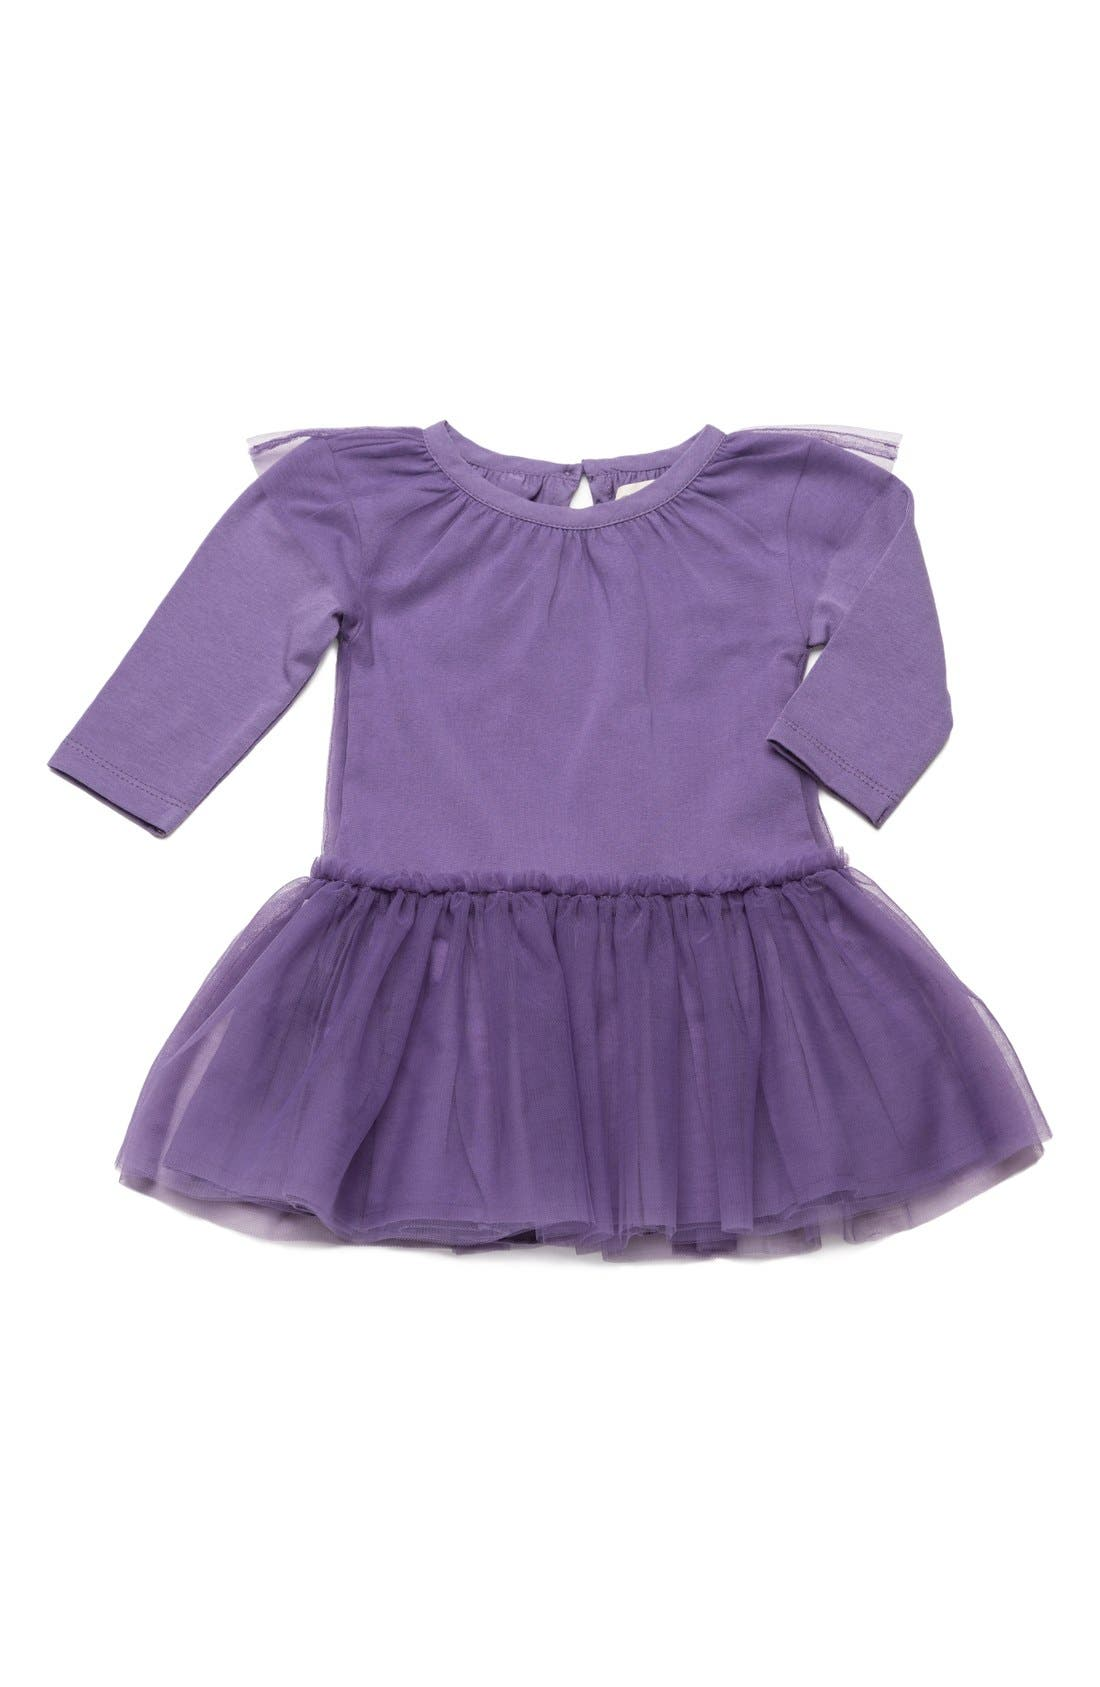 Little Belle Tulle Skirt Dress,                             Main thumbnail 1, color,                             500